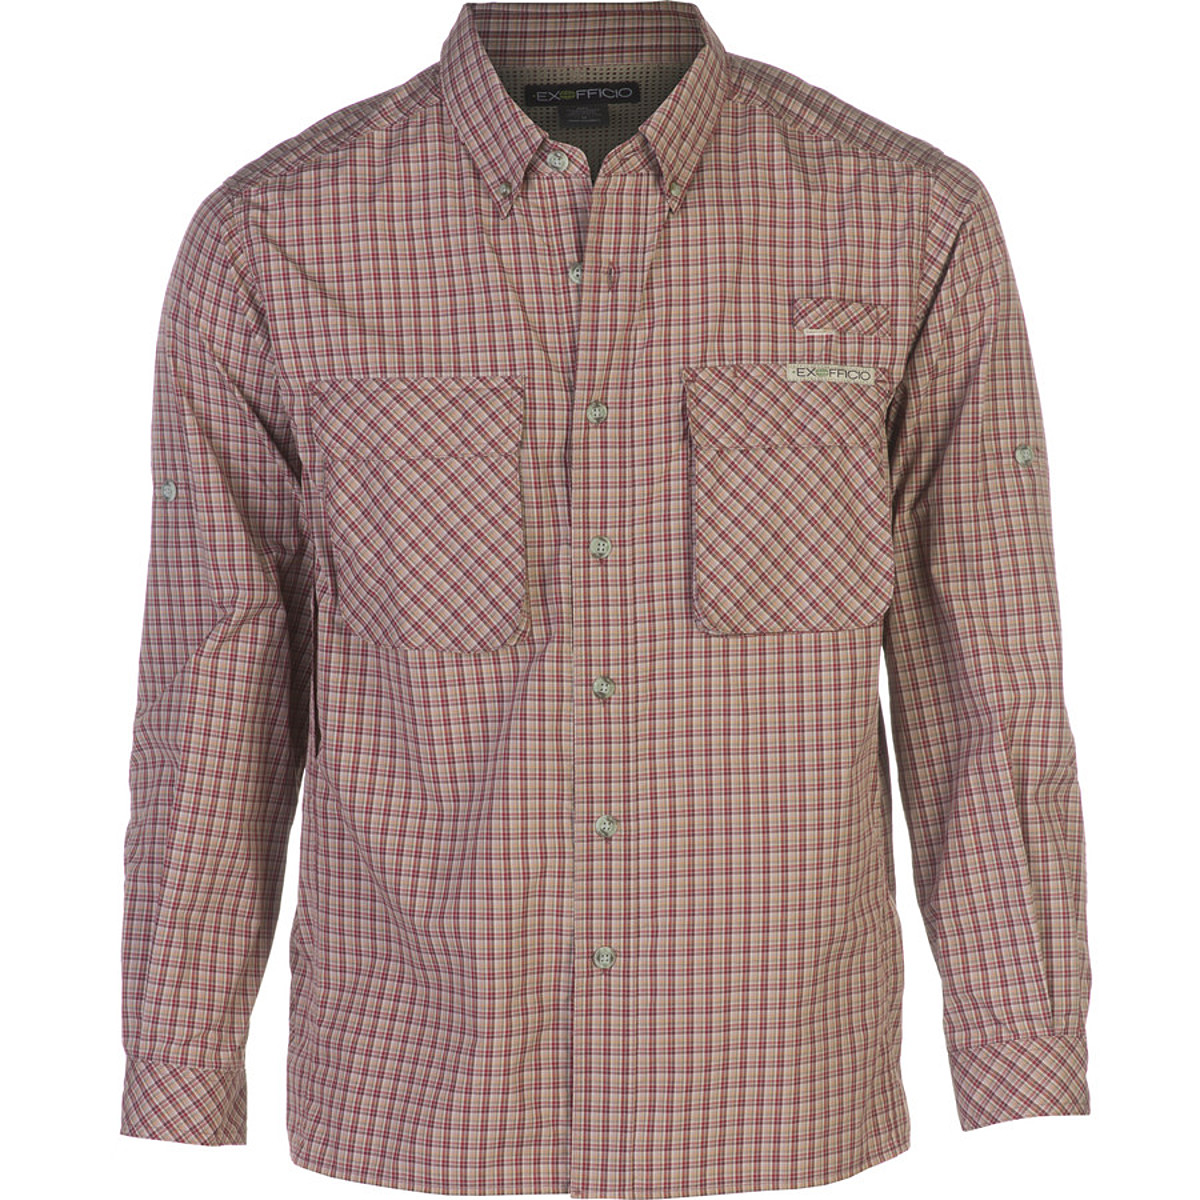 ExOfficio Air Strip Lite Plaid Long-Sleeve Shirt